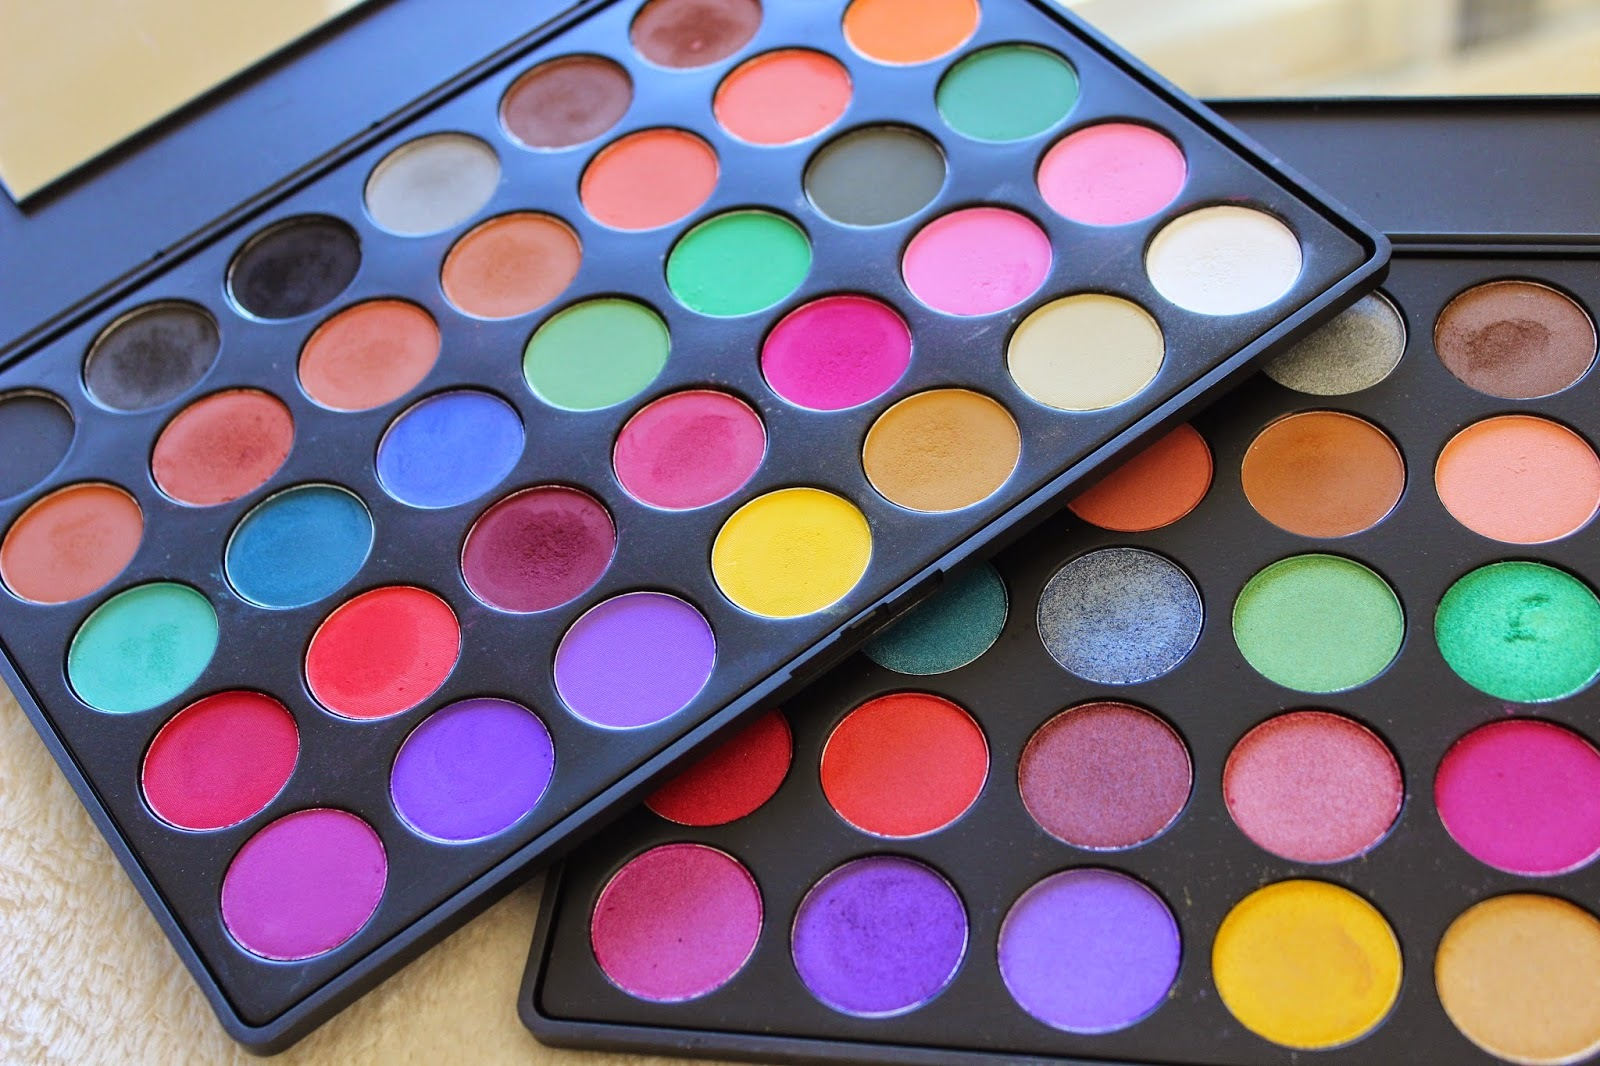 The 7 Best Eyeshadow Palettes To Buy Now - GlossyBox